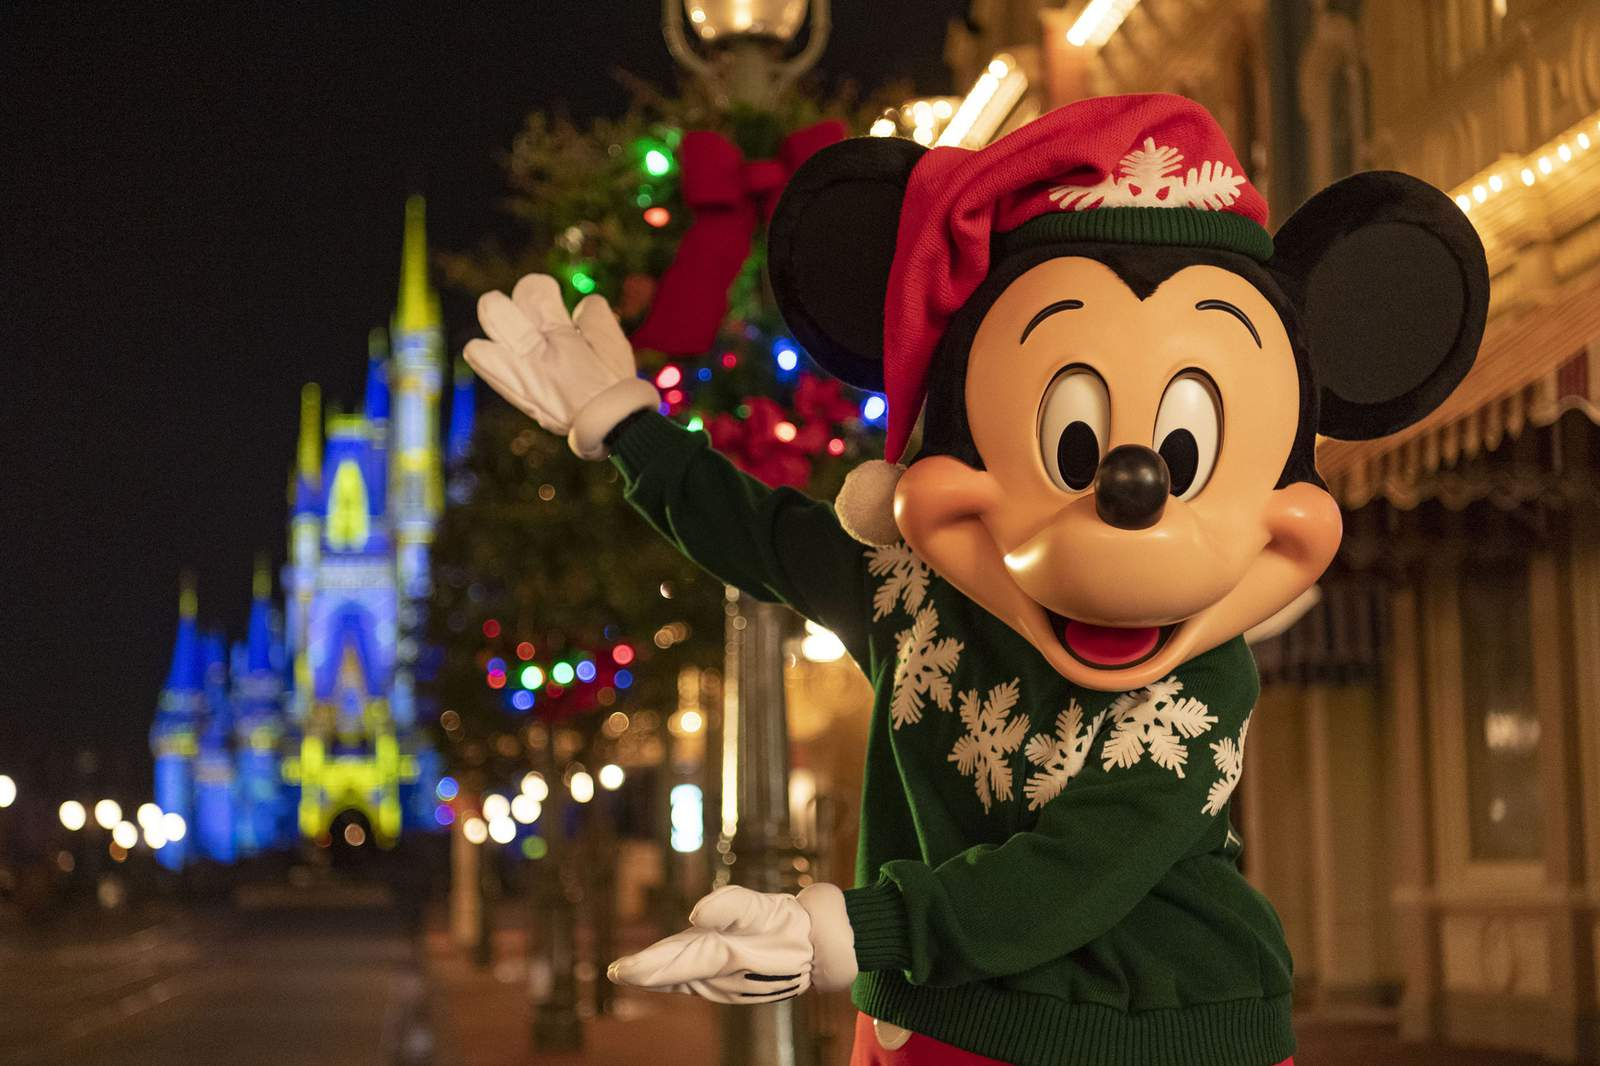 Disney Christmas Events 2020 Deck the halls: Walt Disney World reimagines 2020 holiday celebration